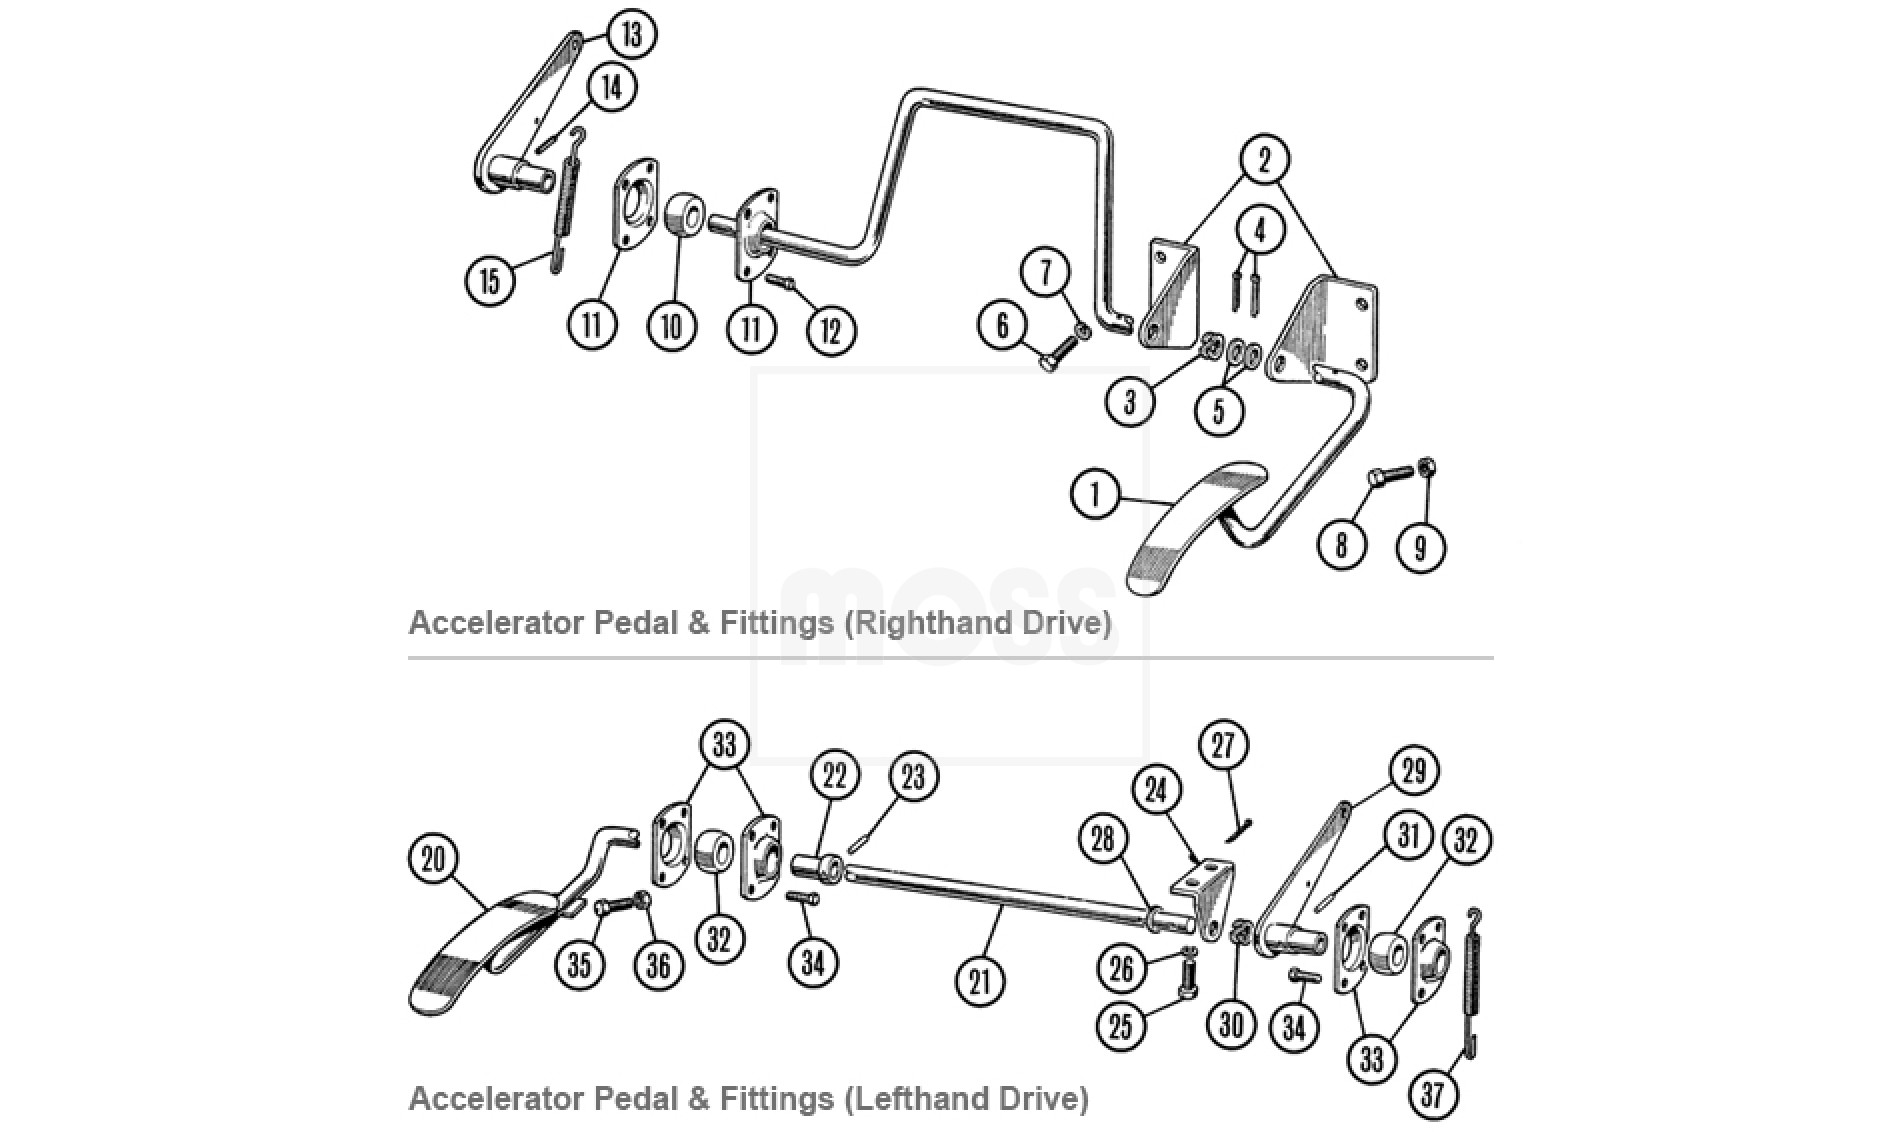 Accelerator Pedal Amp Fittings